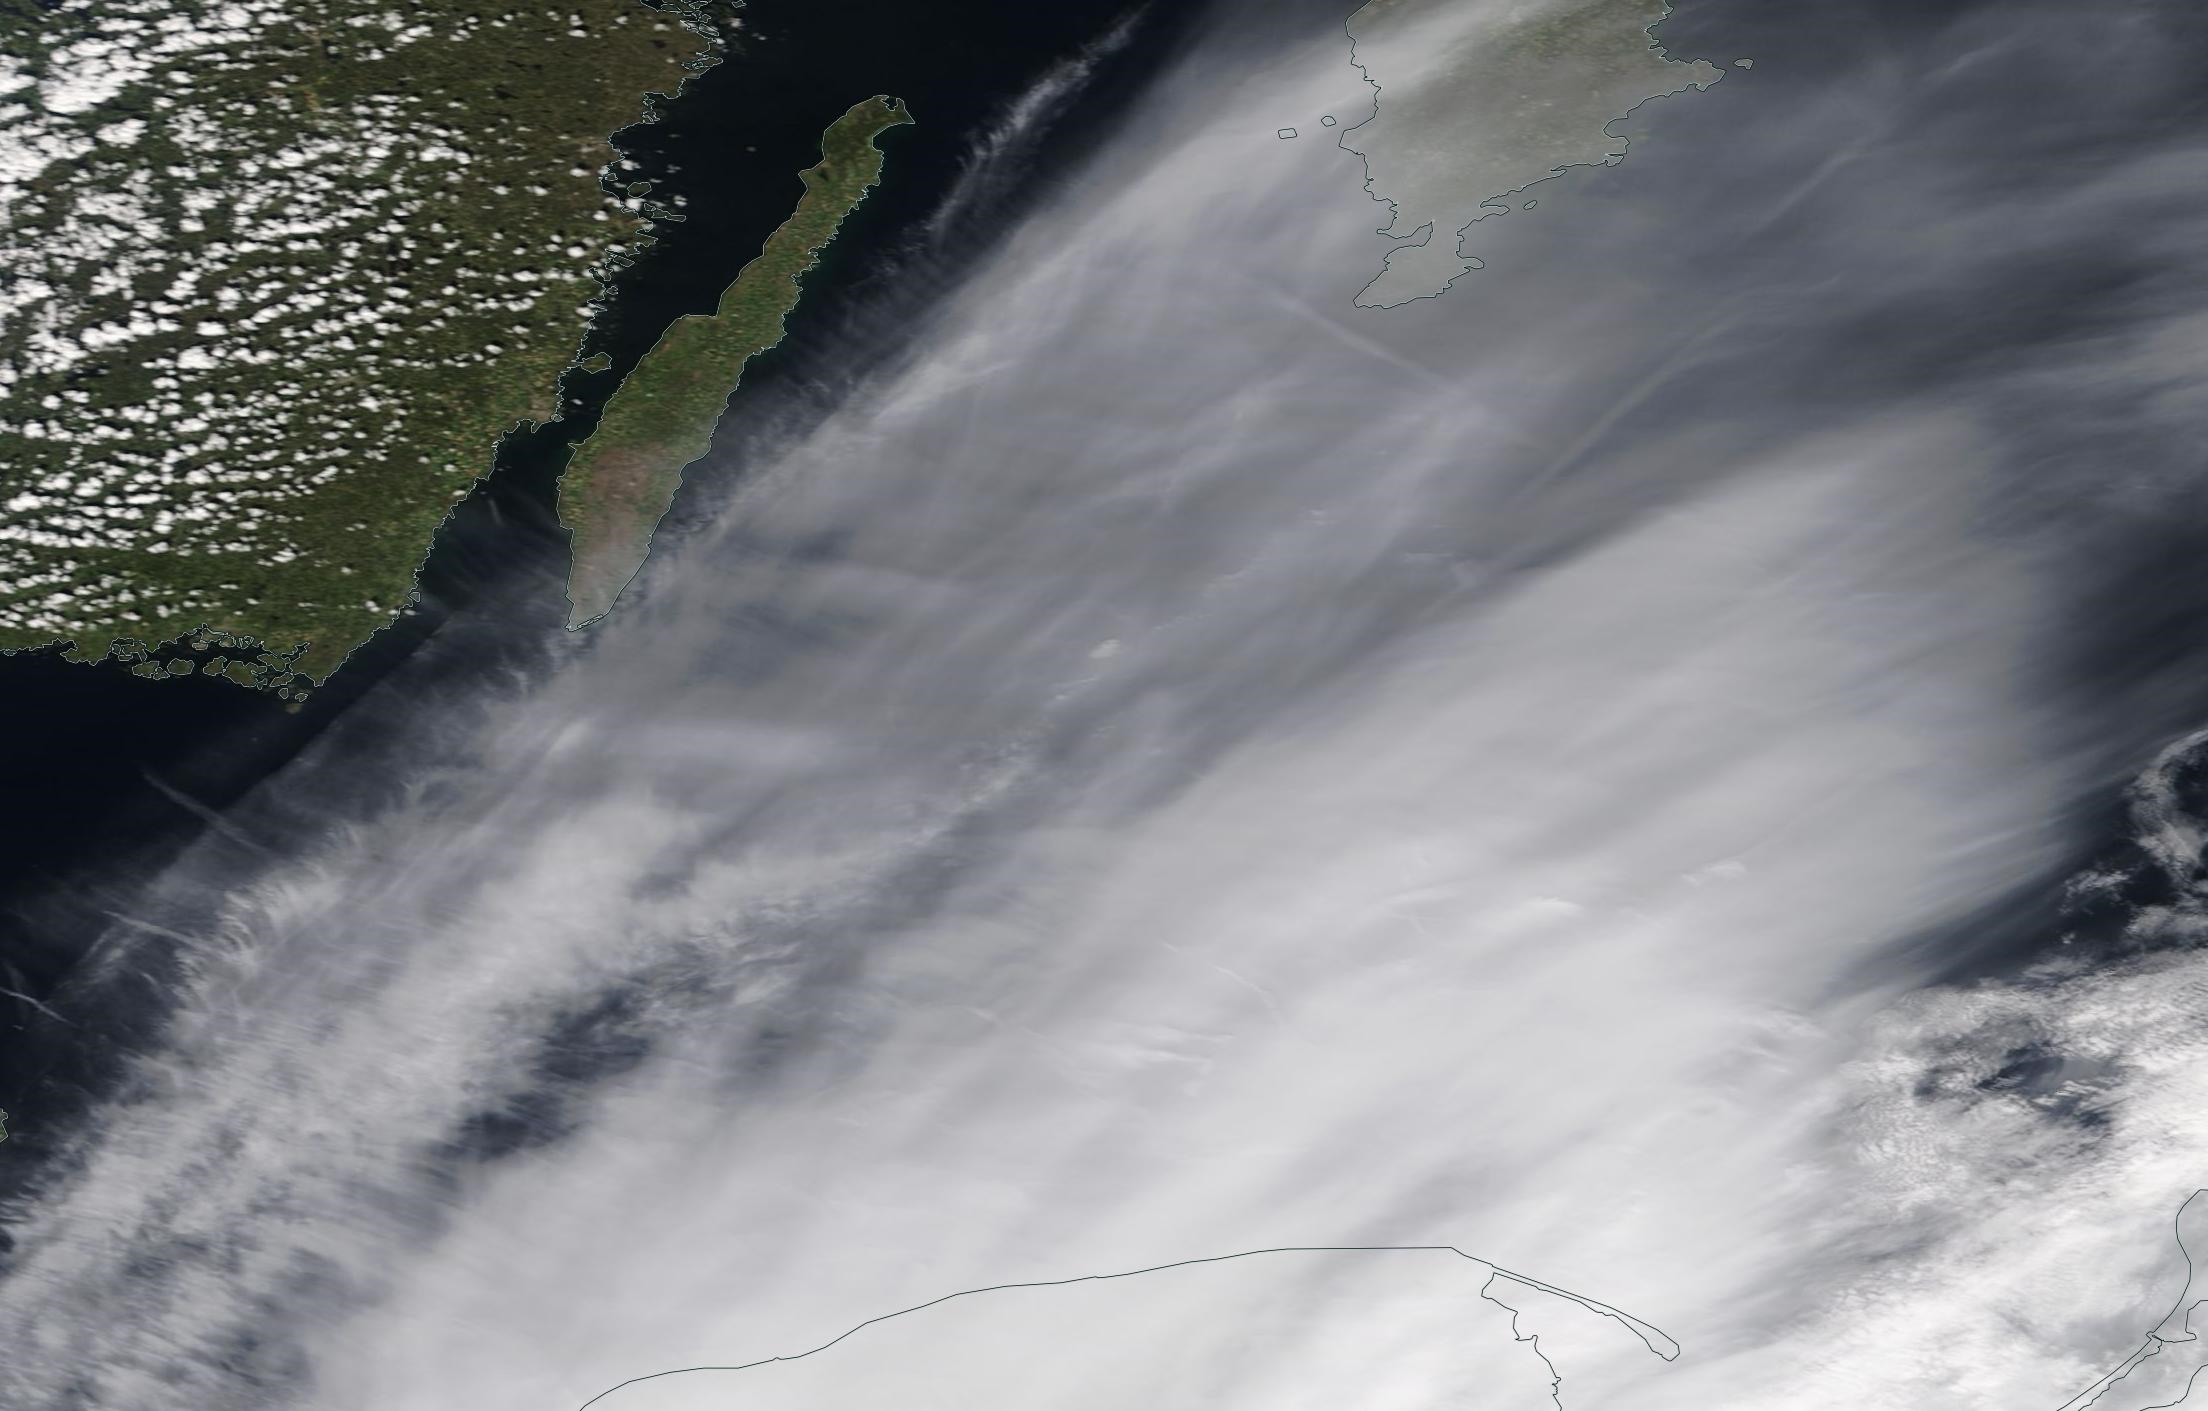 Baltic Sea, Oland, Gdansk chemtrails geoengineering Sunday 12 May 2019 ... https://go.nasa.gov/2E4JQ37